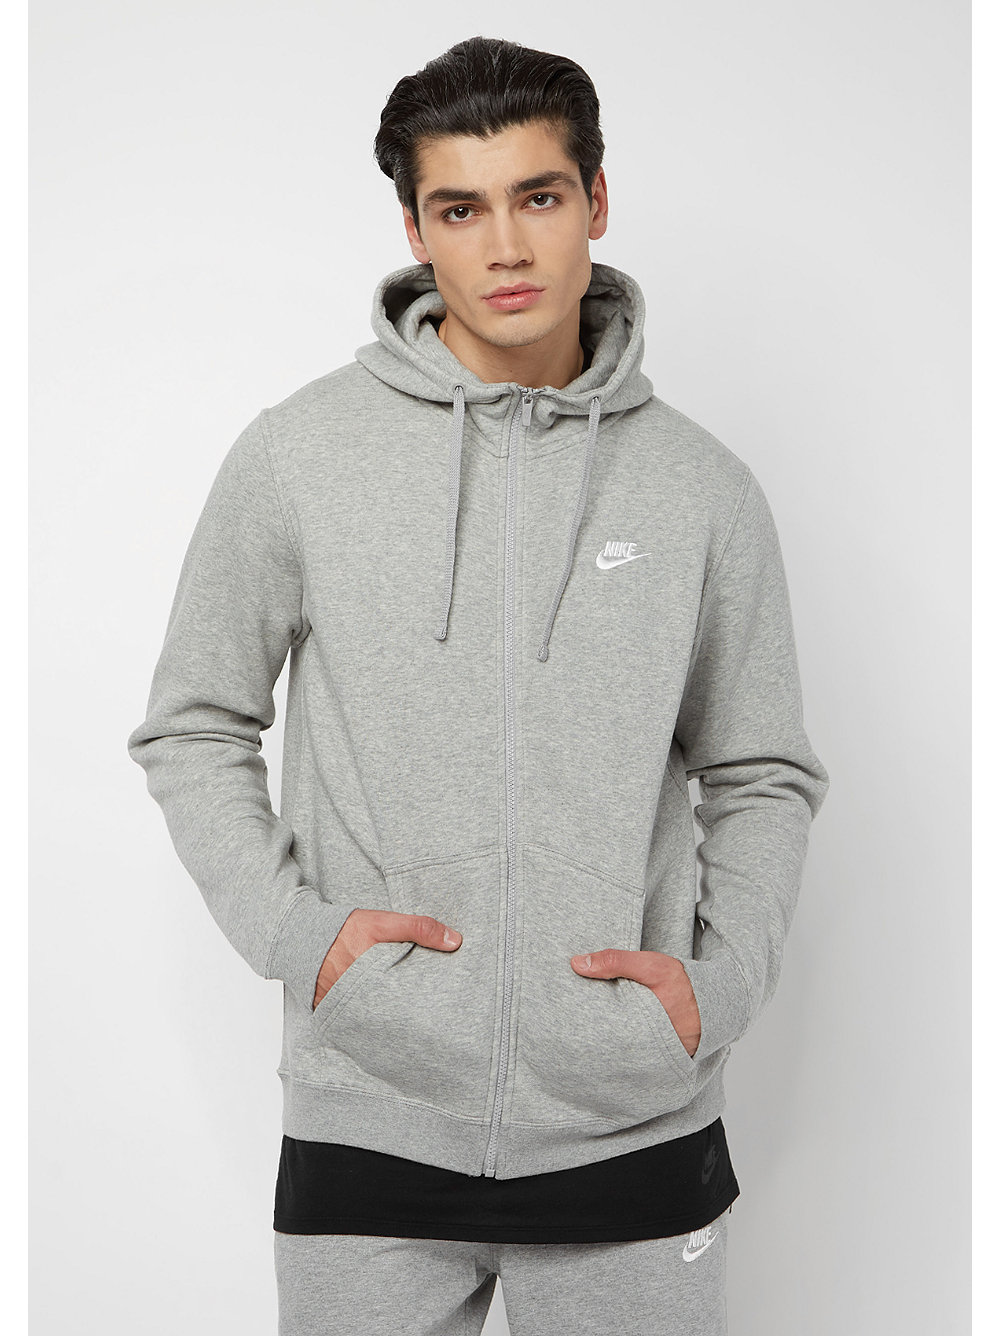 nike sportswear hoodie darkgrey heather dark grey heather. Black Bedroom Furniture Sets. Home Design Ideas